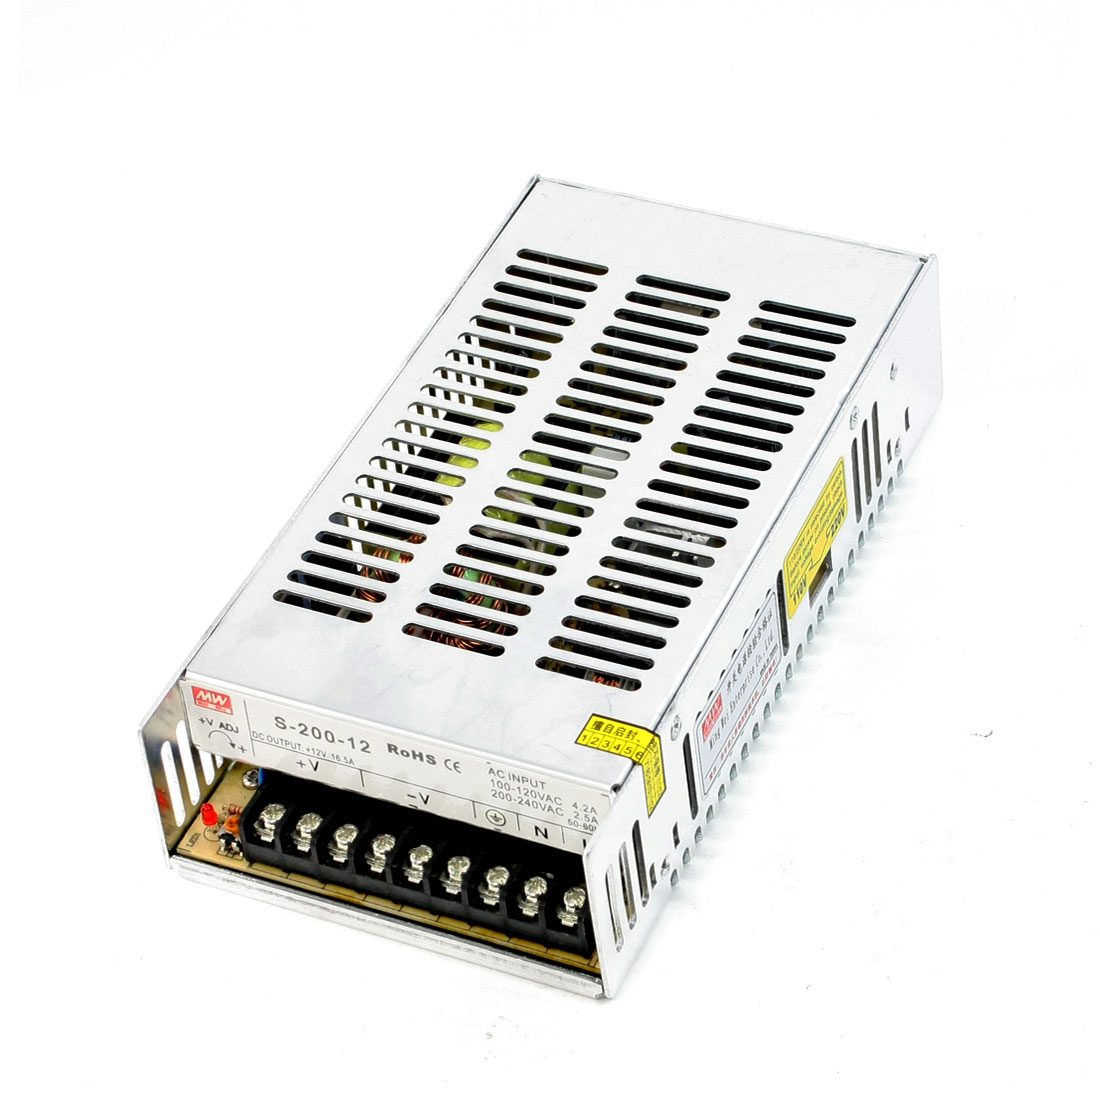 100-120VAC DC12V 16.5A 200W Power Supply Converter Adapter for LED Illumination